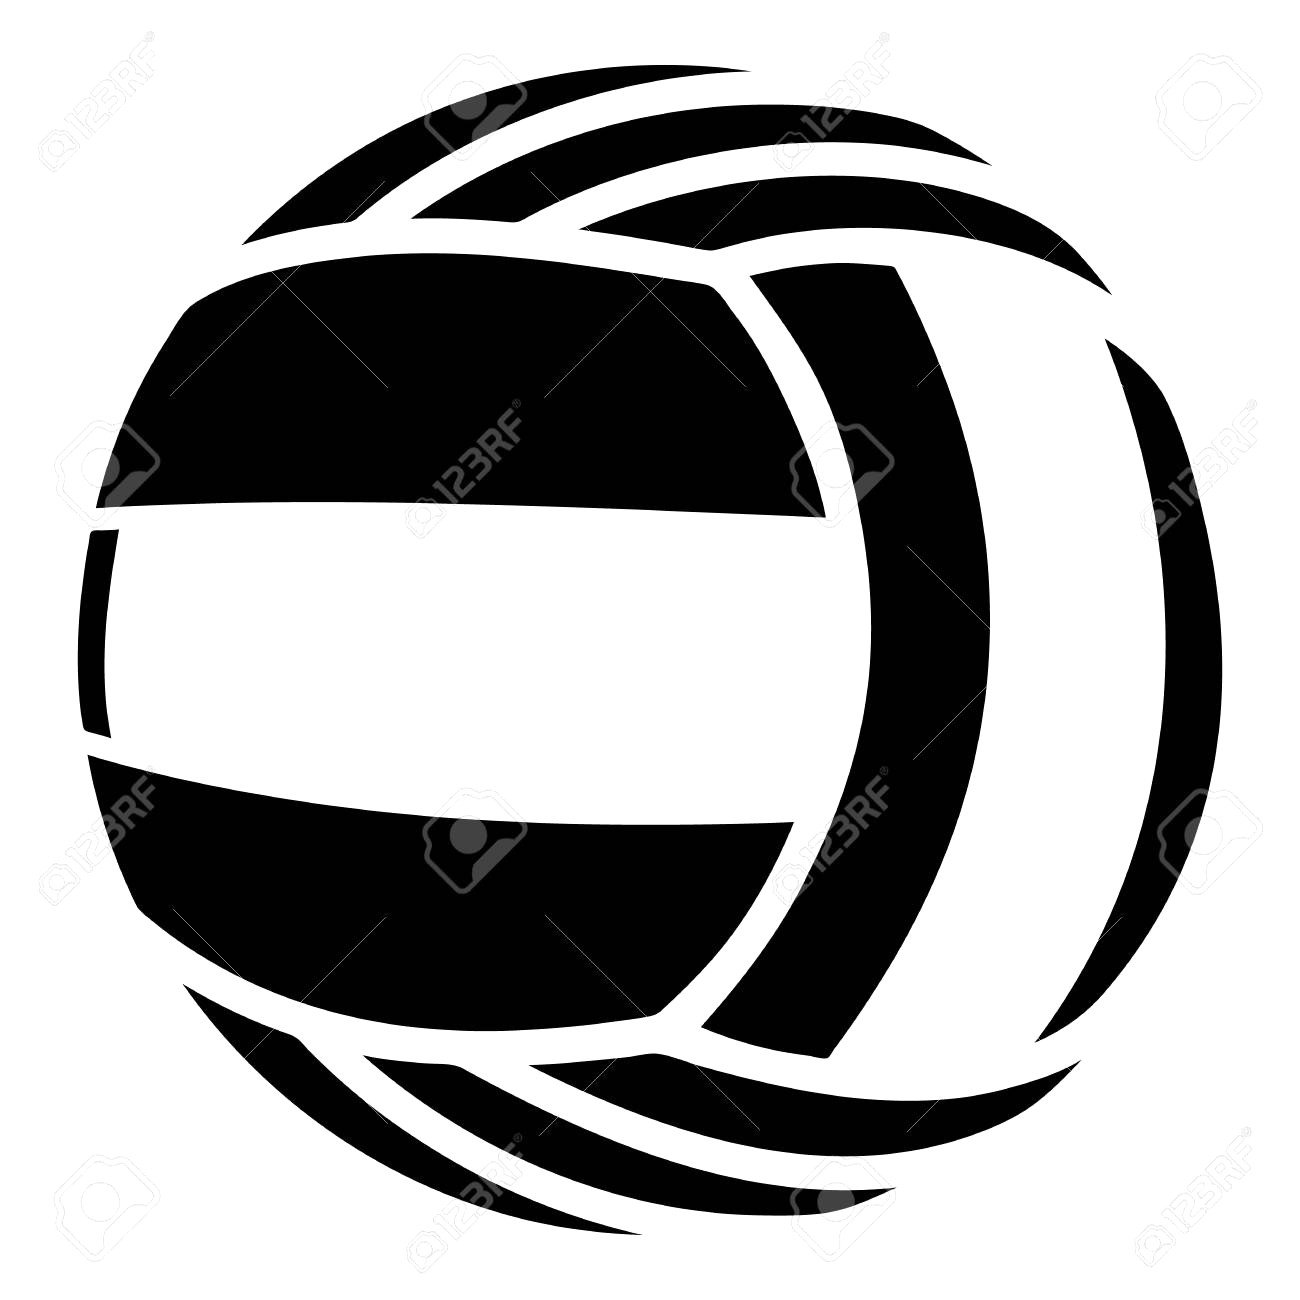 1300x1300 97639700 Sports Equipment Volleyball Vector Illustration Isolated